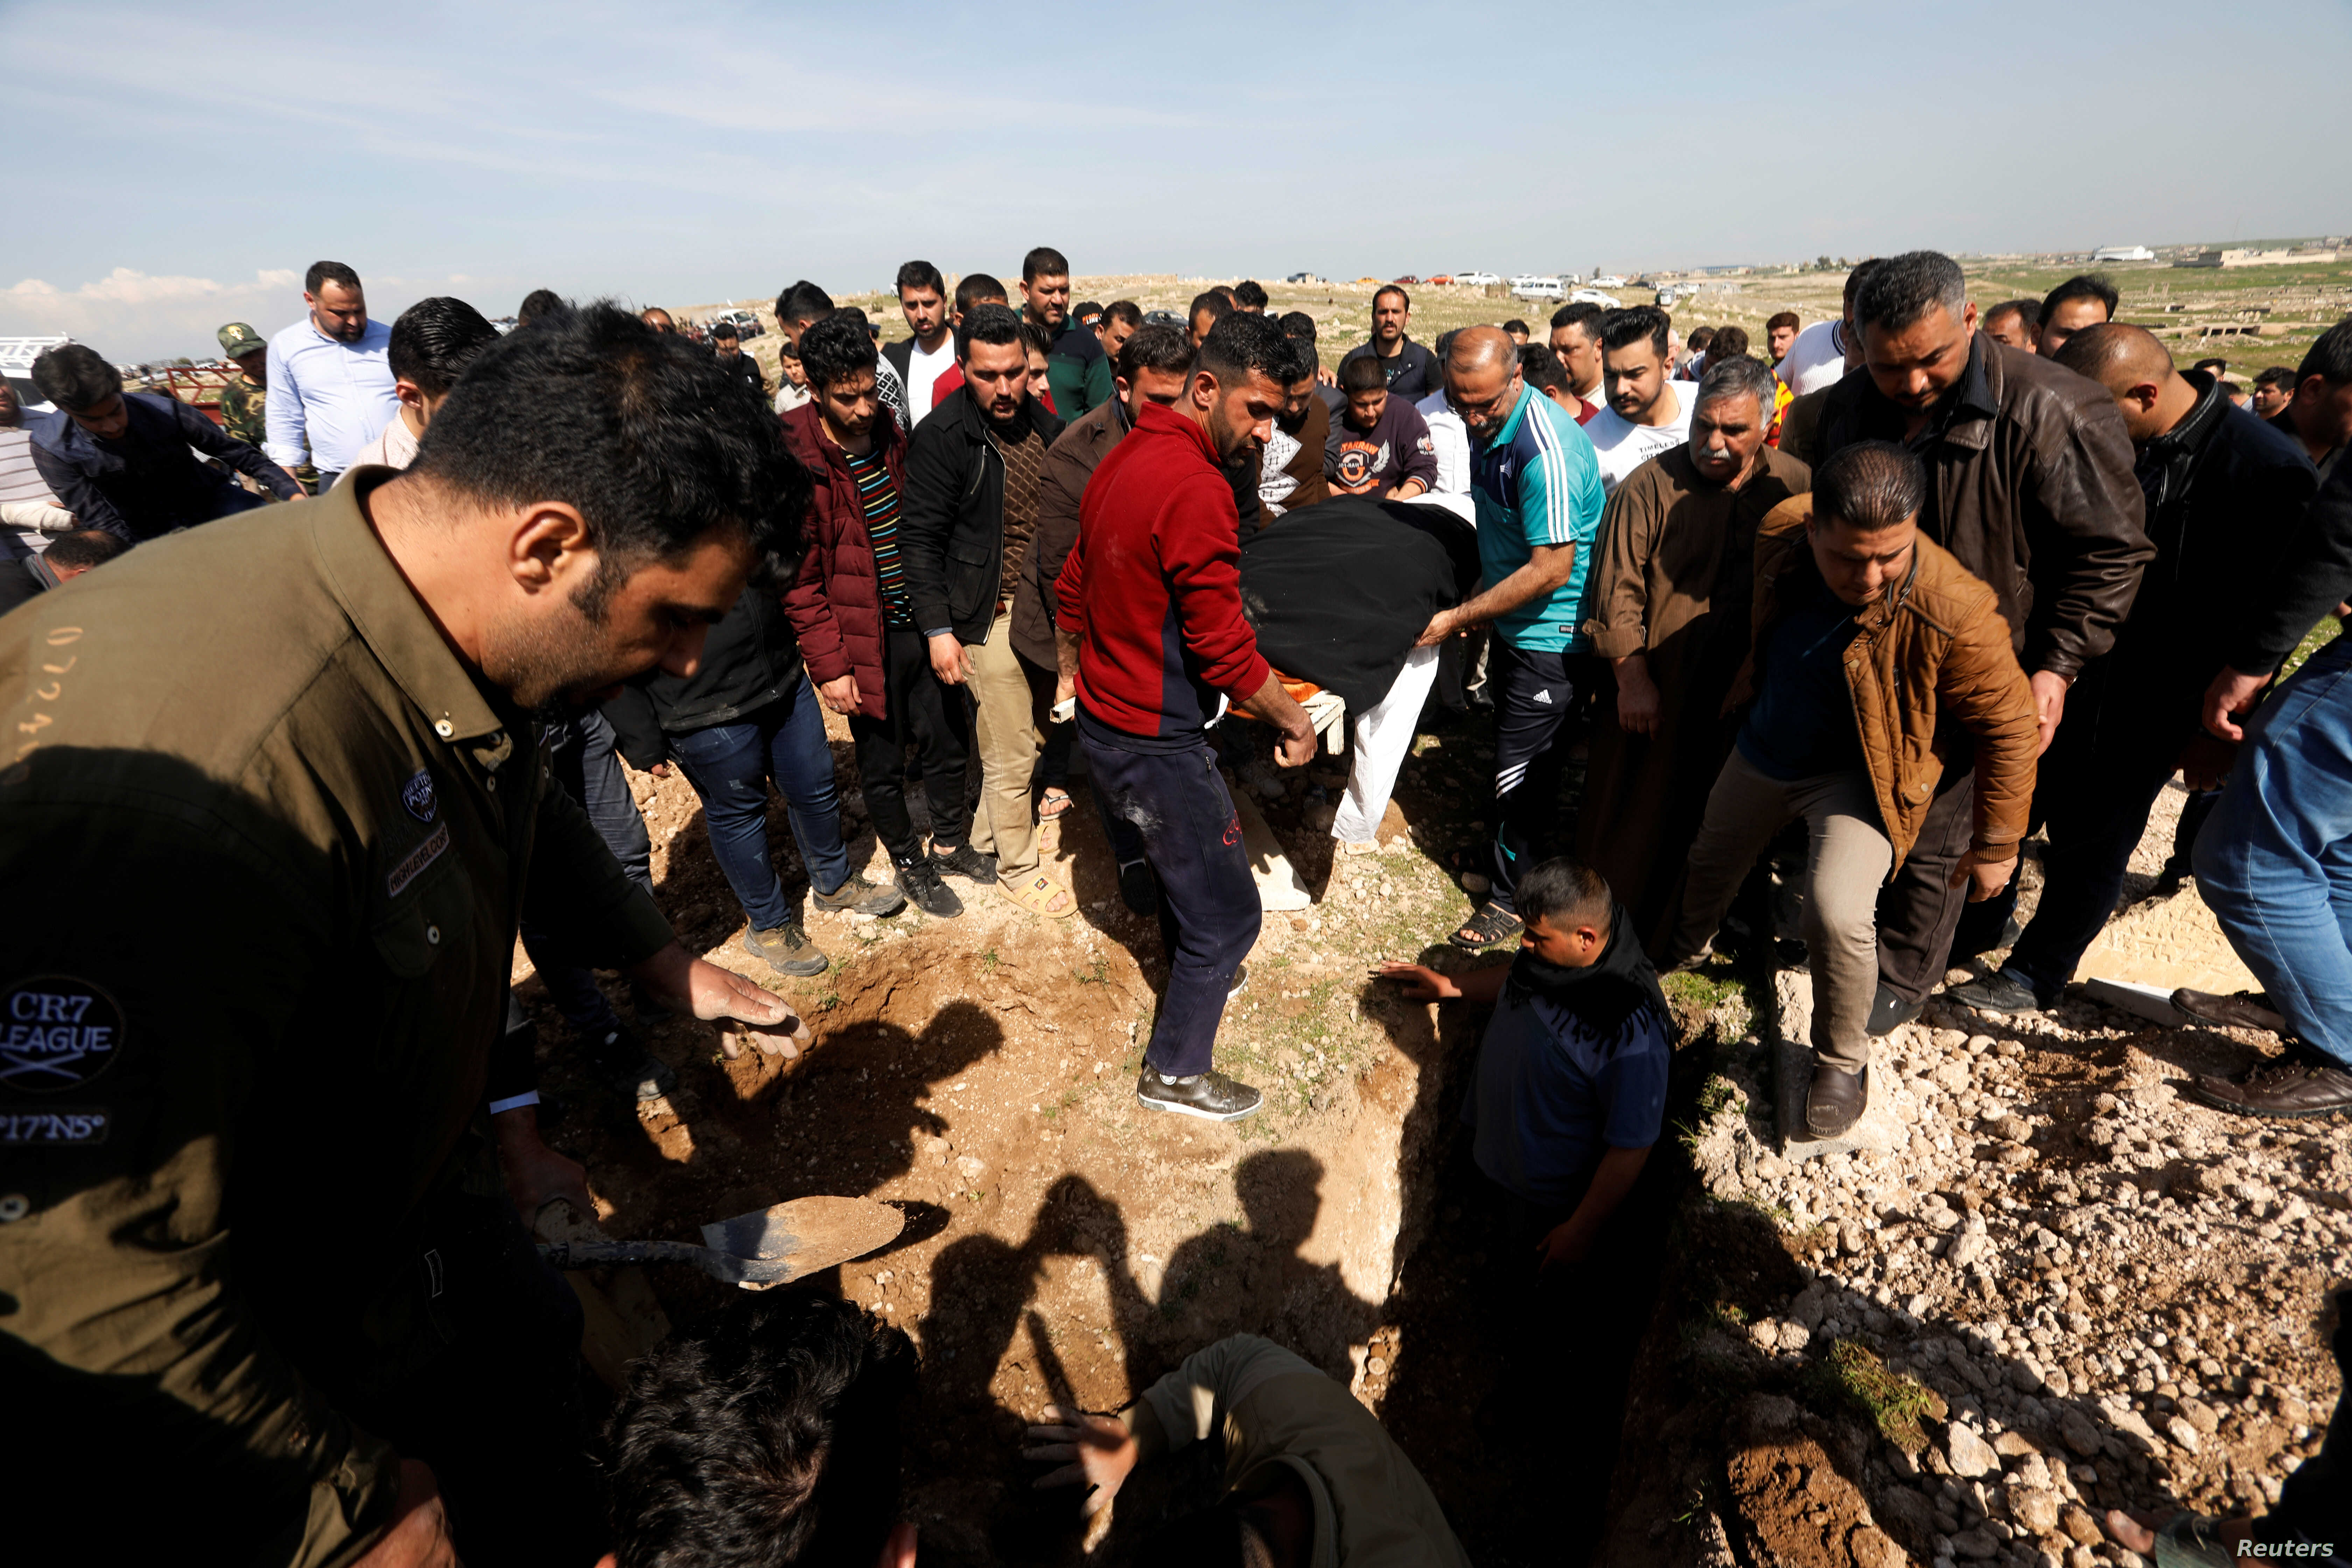 Mourners carry one of the victims who died after an overloaded ferry sank in Tigris river near Mosul, during his funeral at Mosul cemetery, Iraq, March 22, 2019.